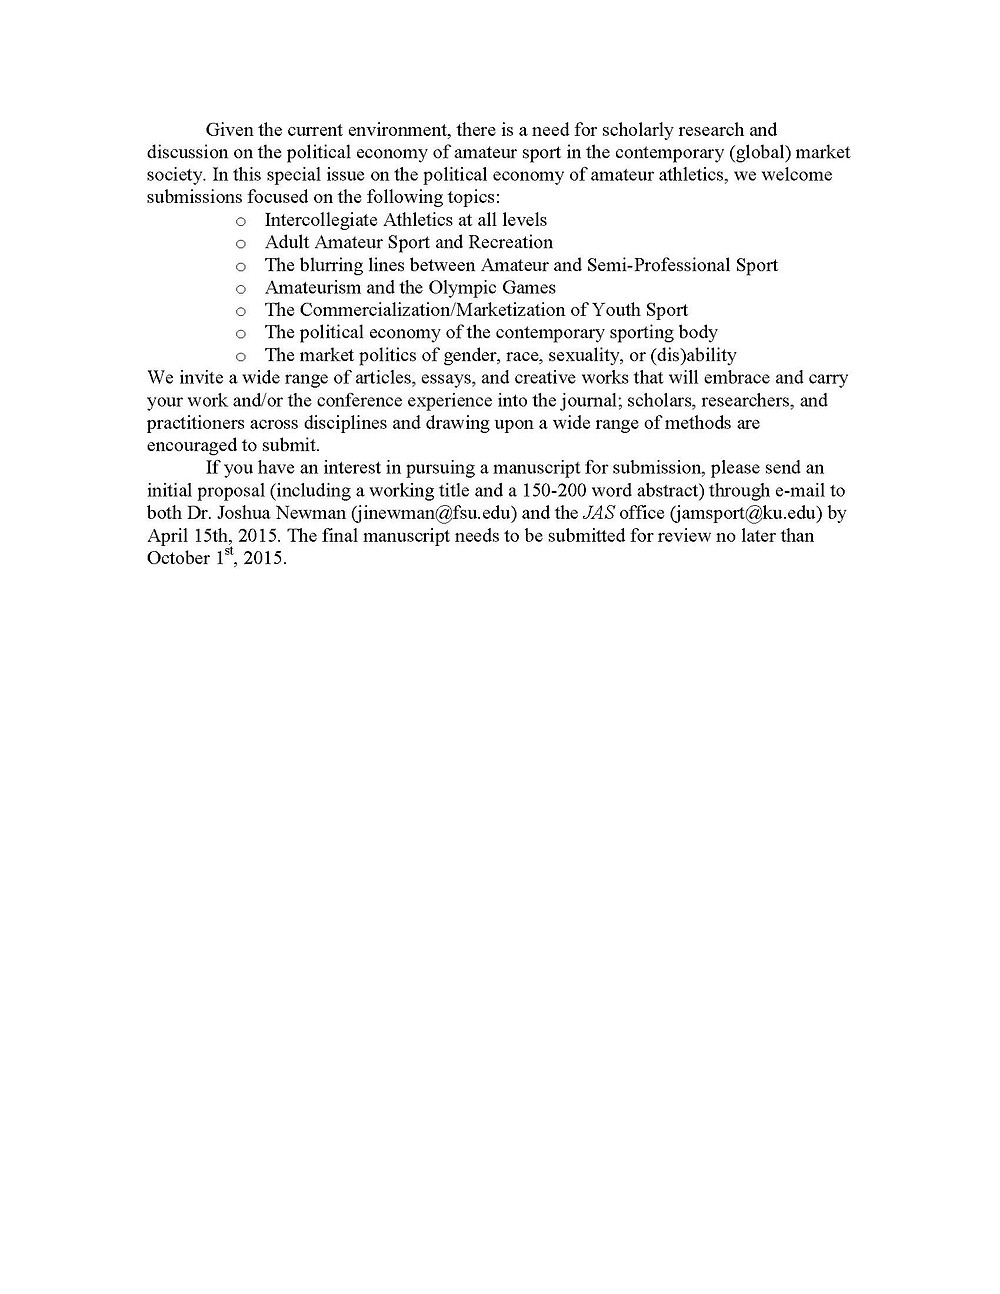 Special Issue Political Economy CFP_Page_2.jpg